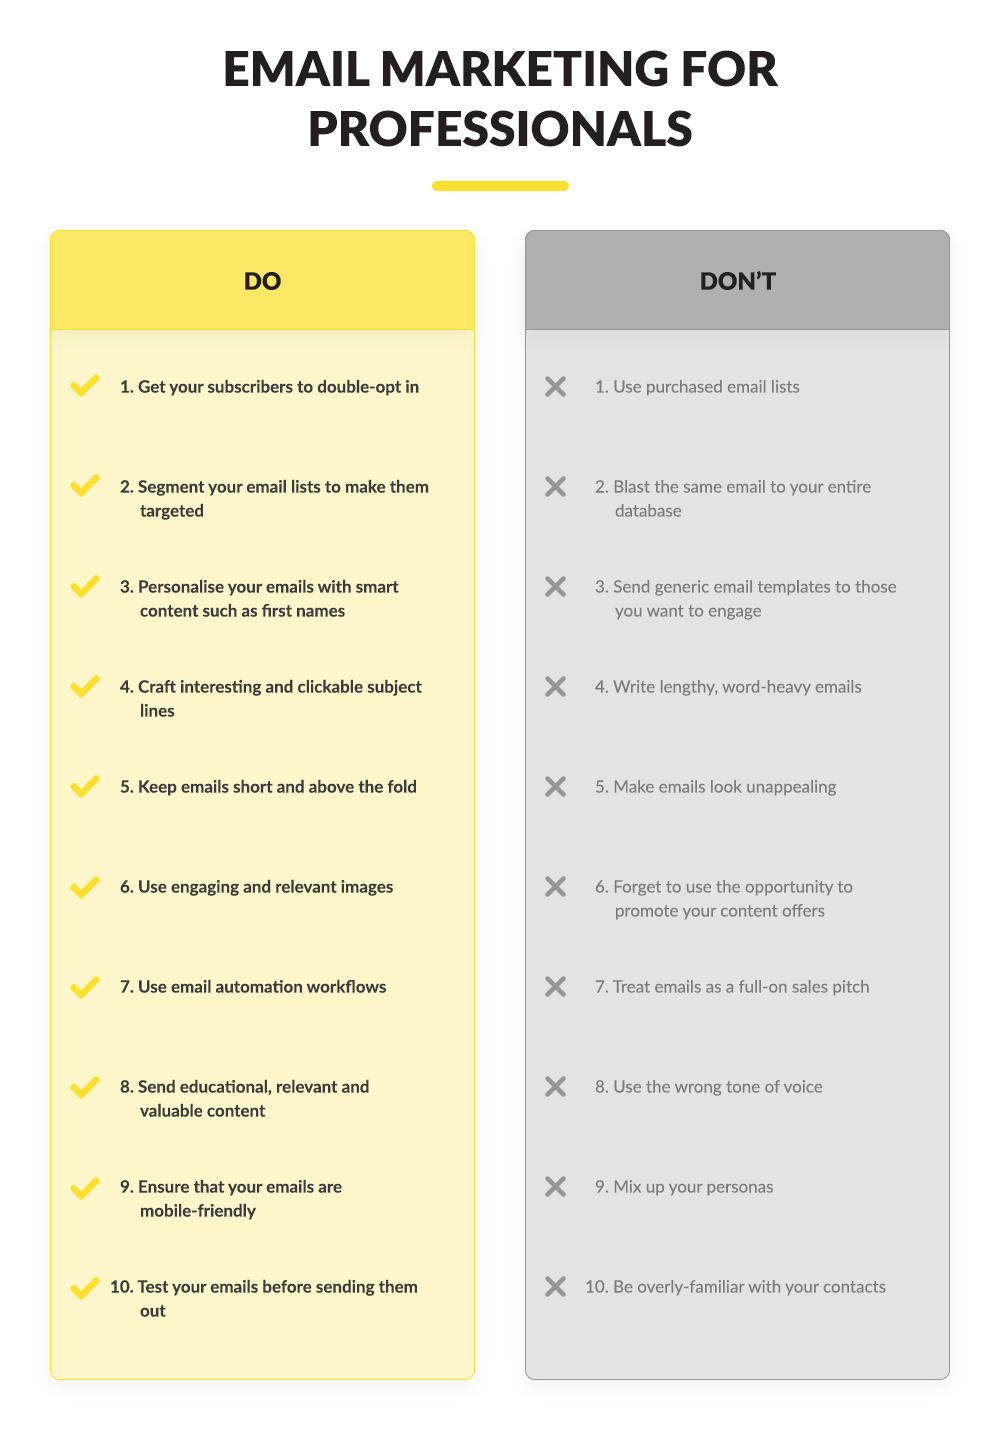 Luminate Digital share ten Email Marketing DO's and DON'Ts for professional services firms to follow